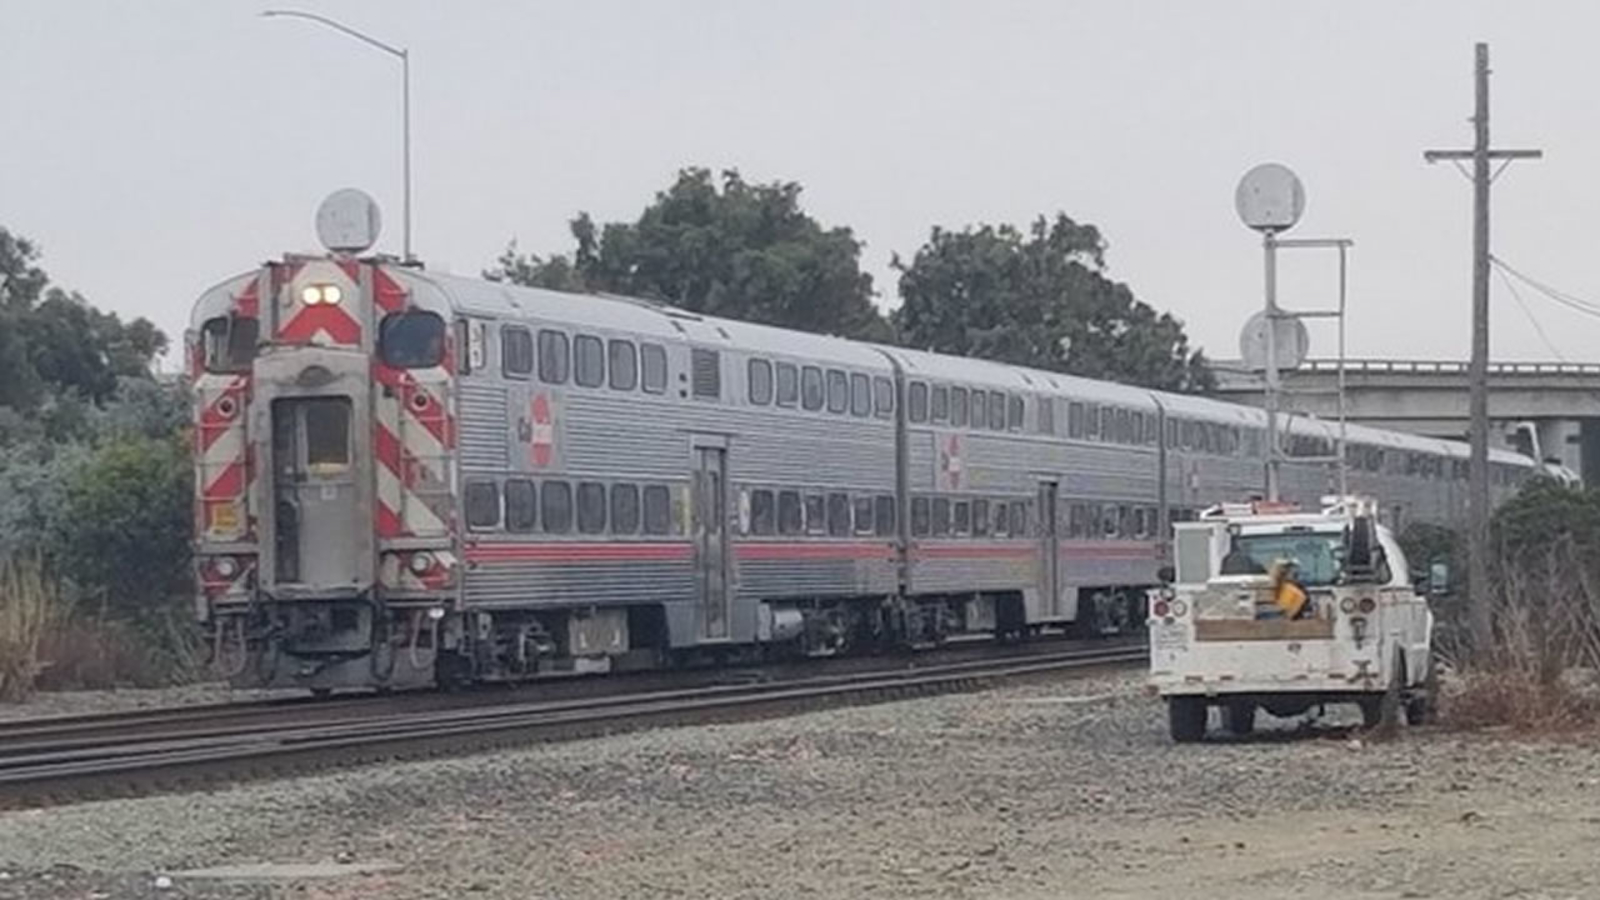 Tracks reopen after Caltrain fatally strikes person in SF